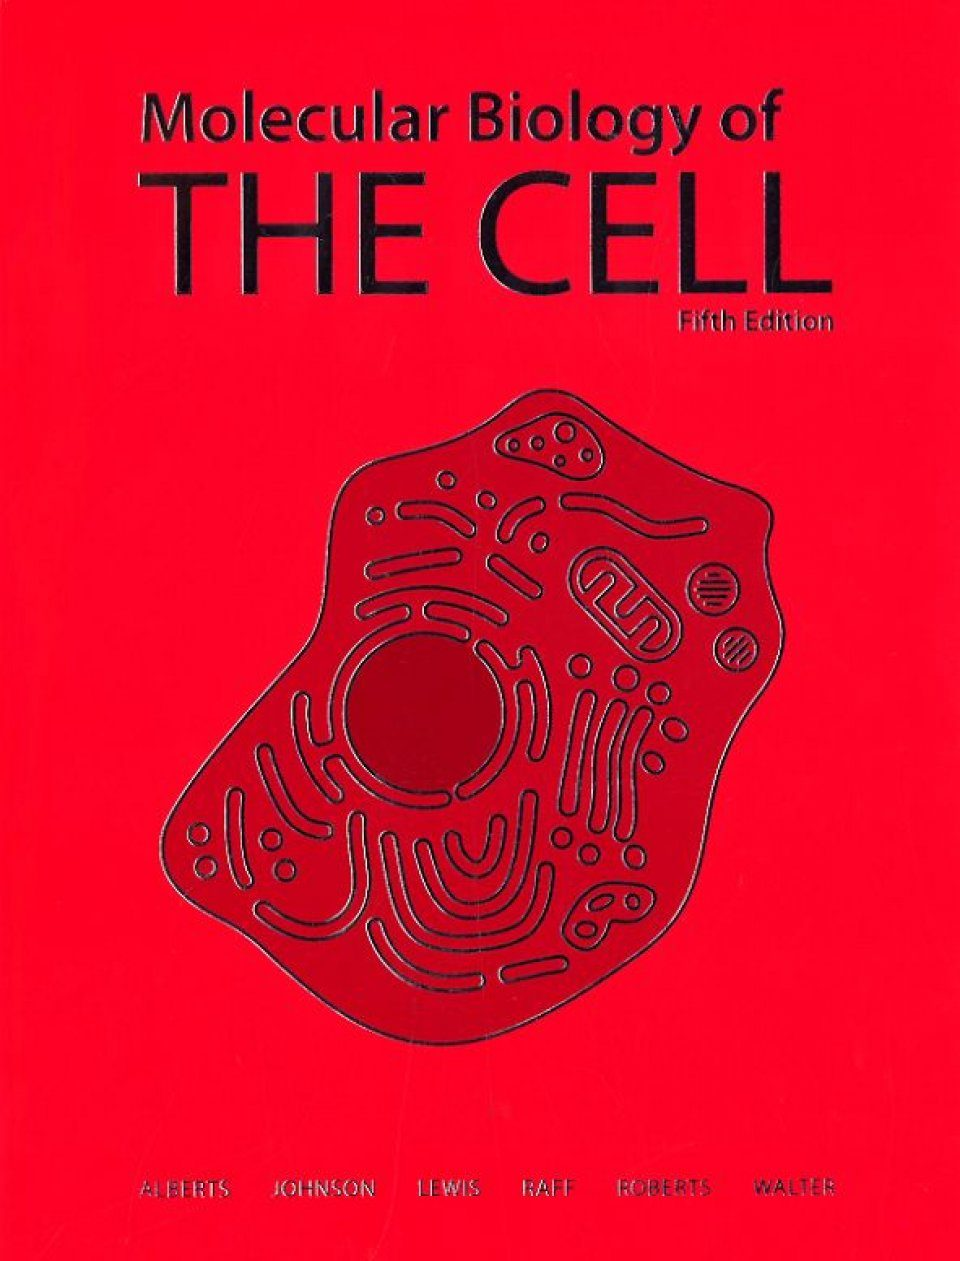 Molecular Biology of the Cell 6th edition pdf Alberts - Book Hut